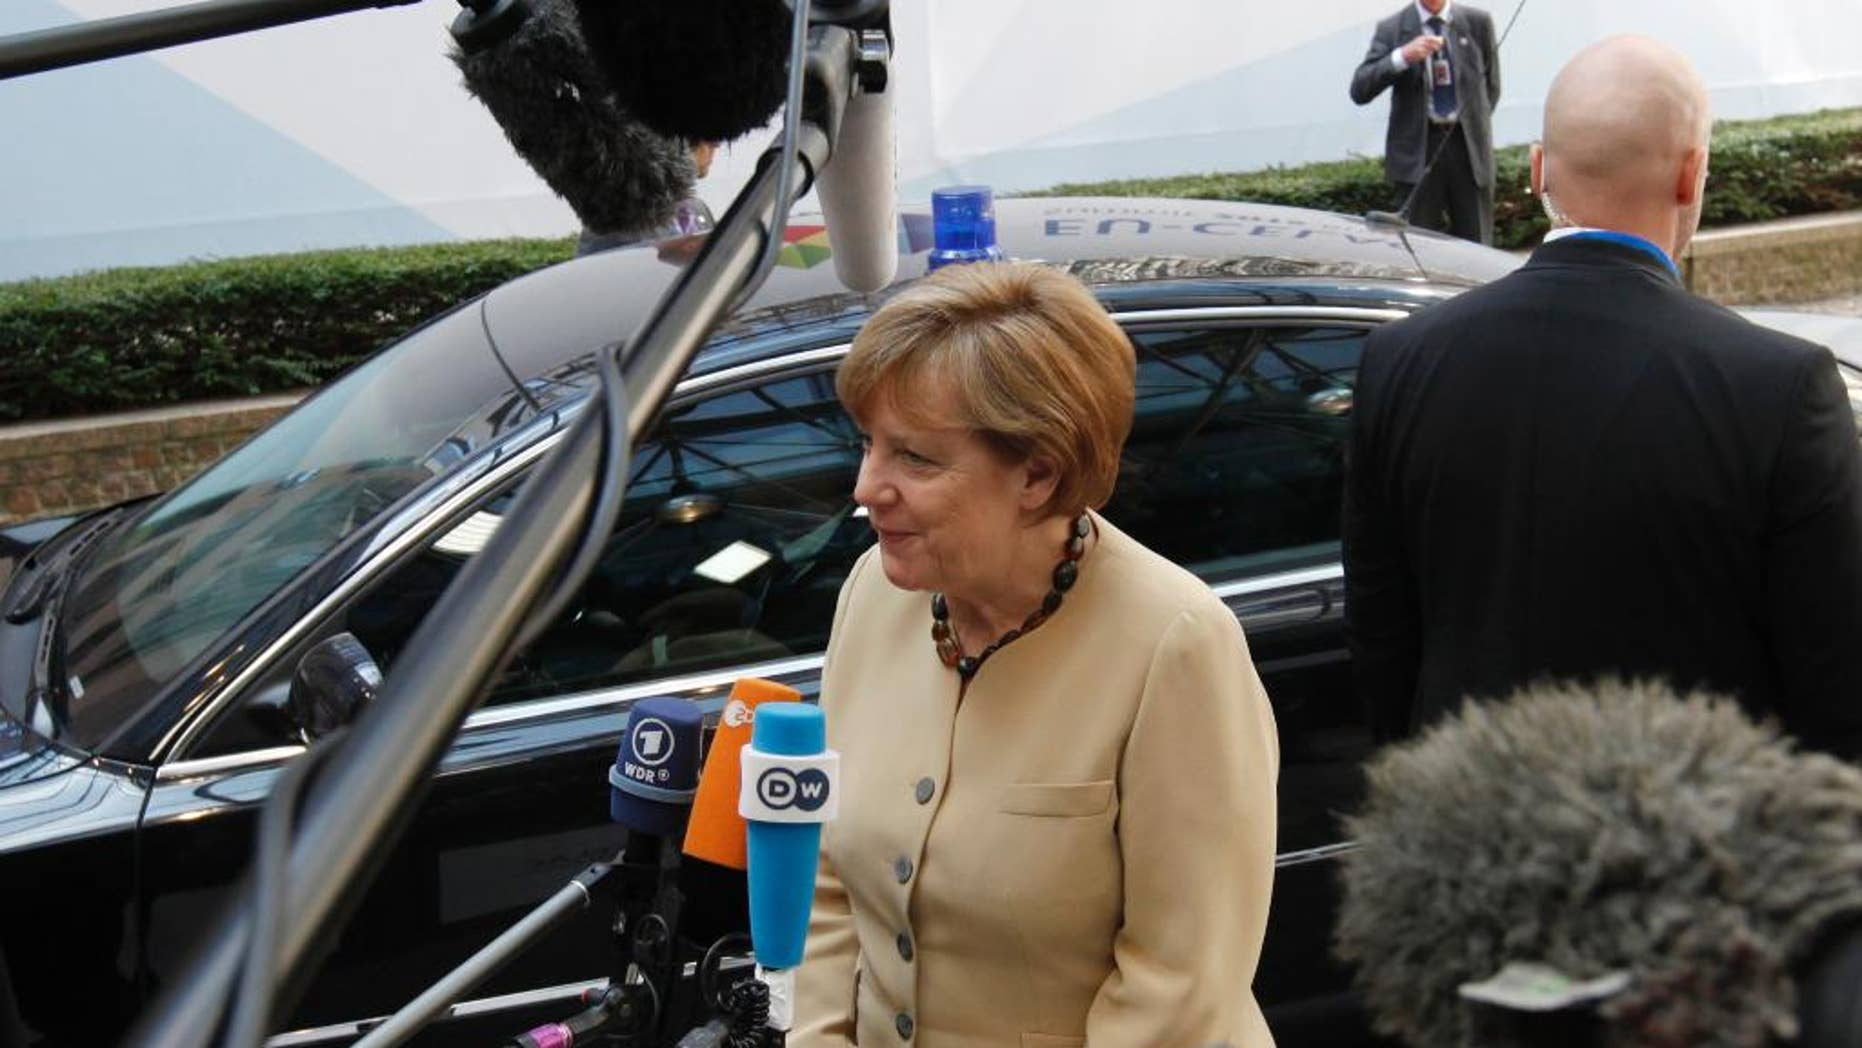 German Chancellor Angela Merkel, center, speaks with the media as she departs an EU-CELAC summit in Brussels on Thursday, June 11, 2015. The main aim of the Brussels summit was to boost trade and diplomatic ties with the region. (Geert Vanden Wijngaert)